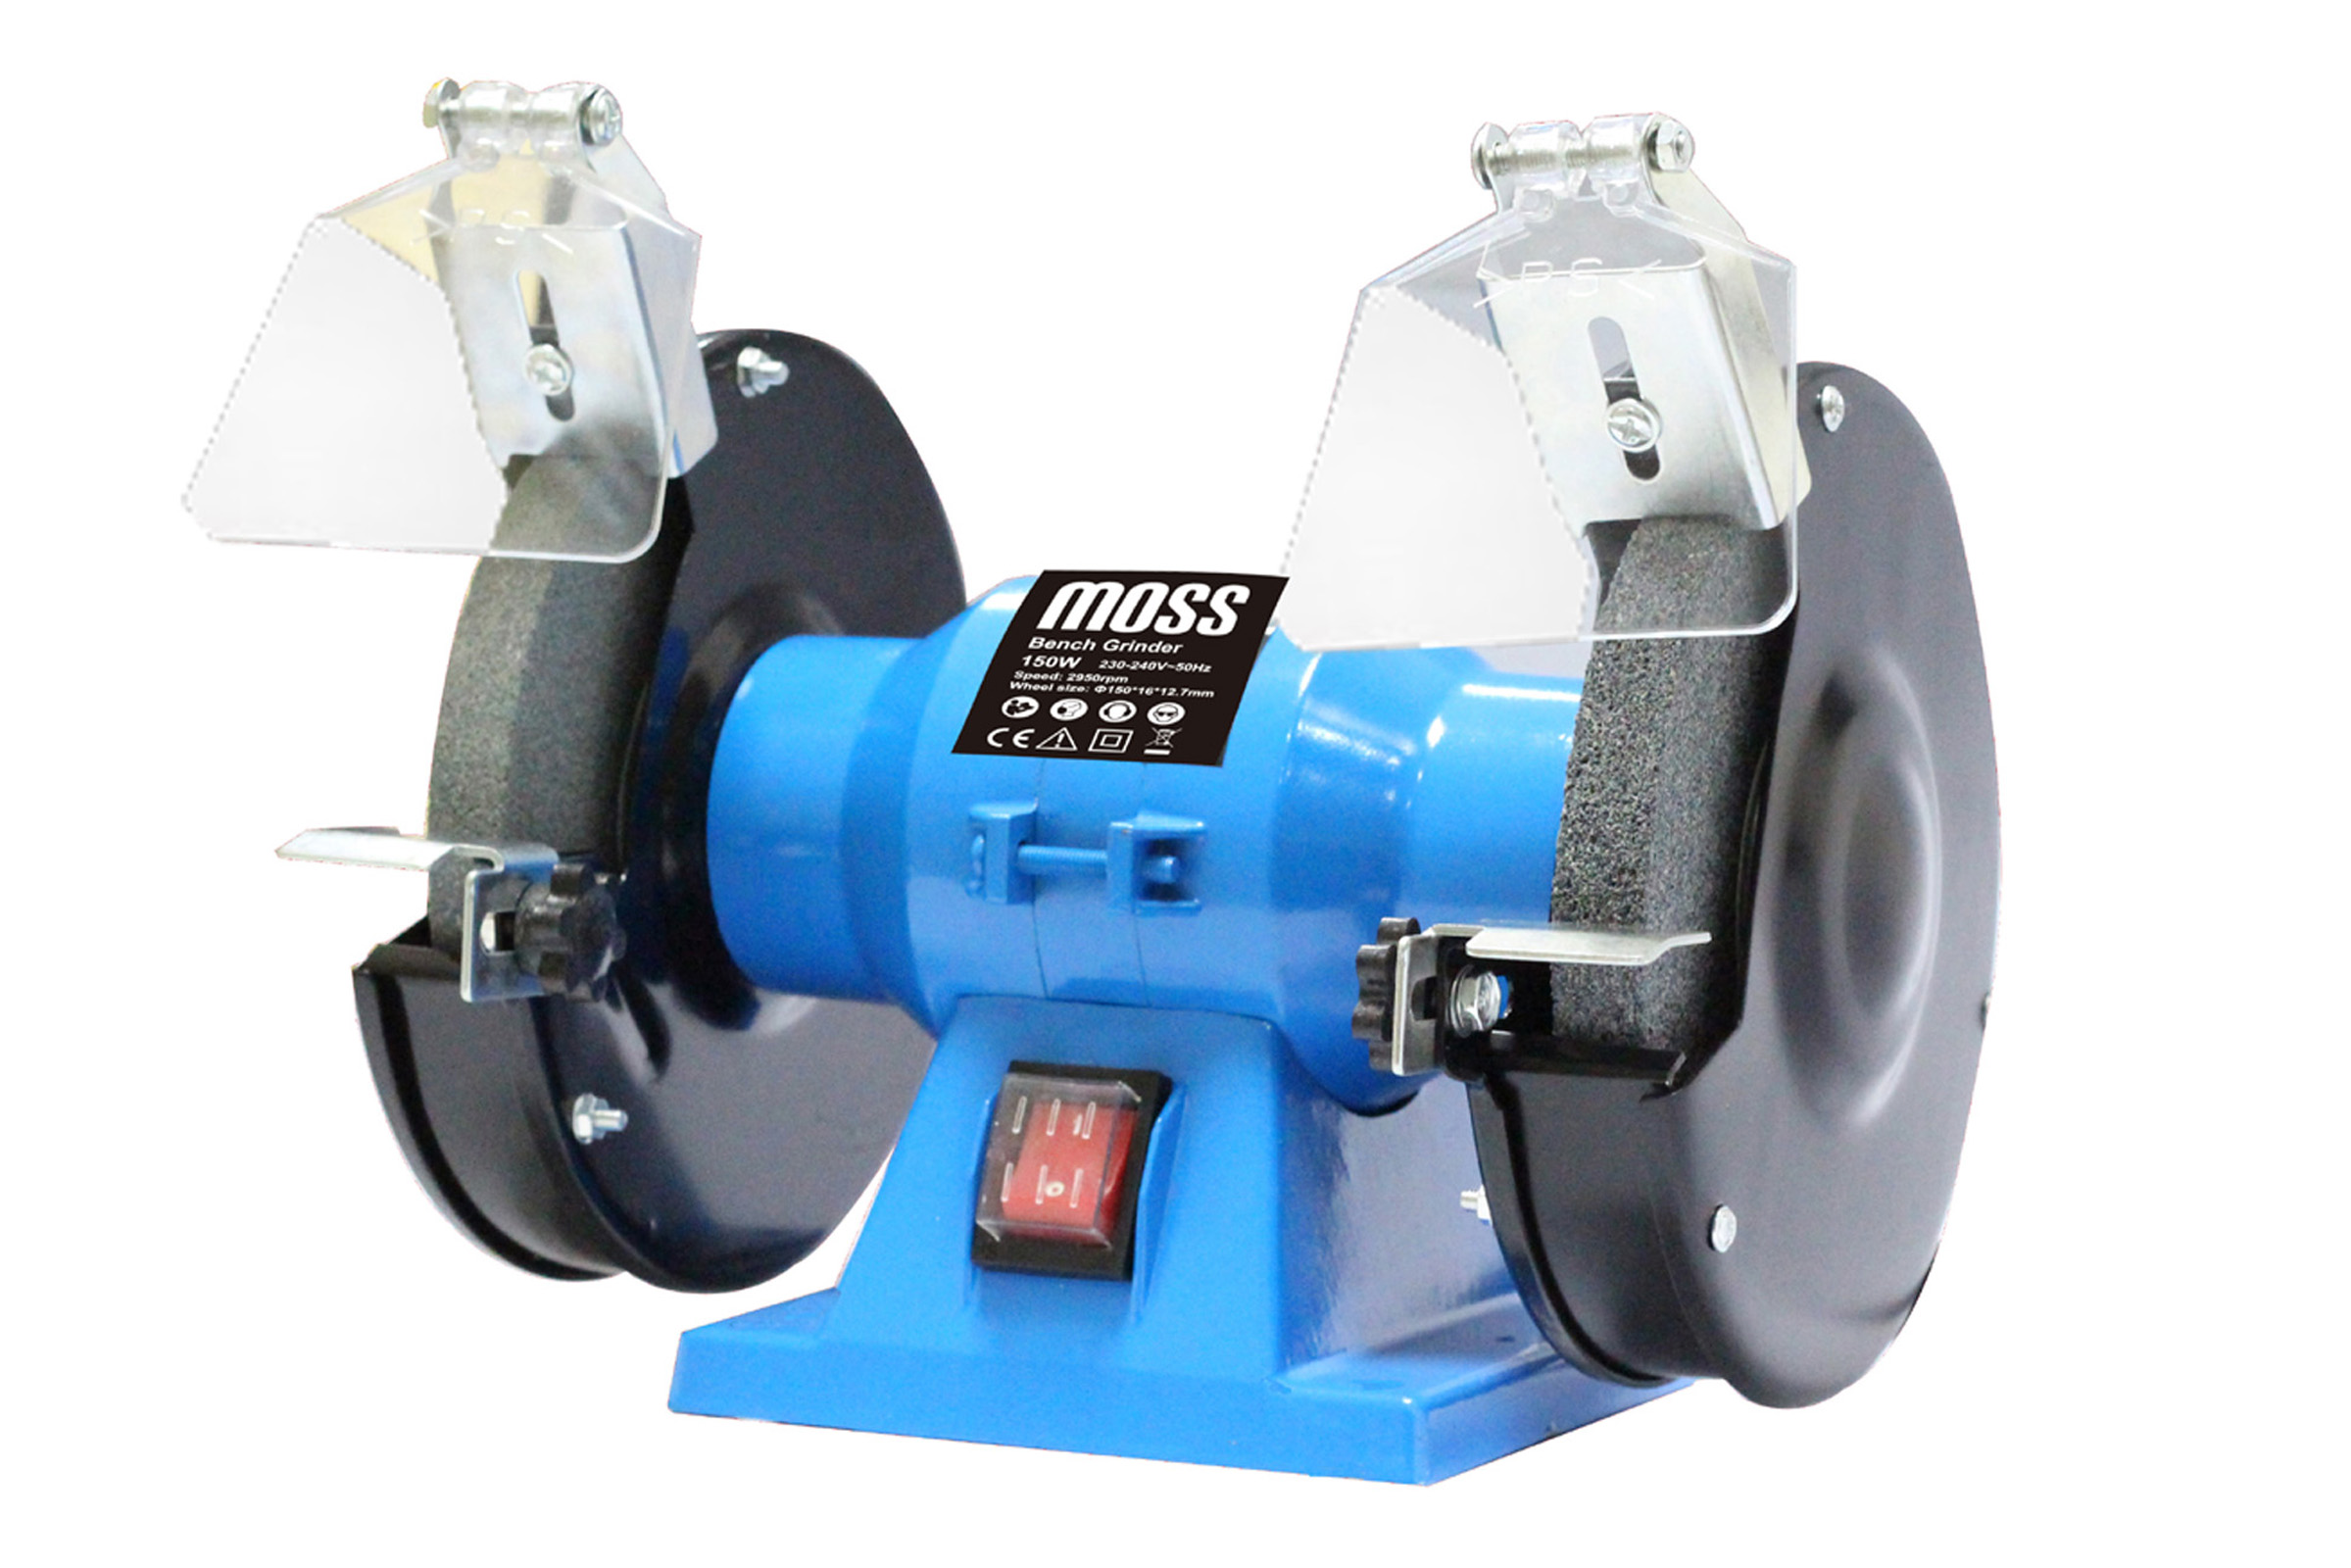 Wondrous Details About Bench Grinder 150W 6 150Mm Twin240V Grindstone Grinding Stone Workshop Garage Caraccident5 Cool Chair Designs And Ideas Caraccident5Info